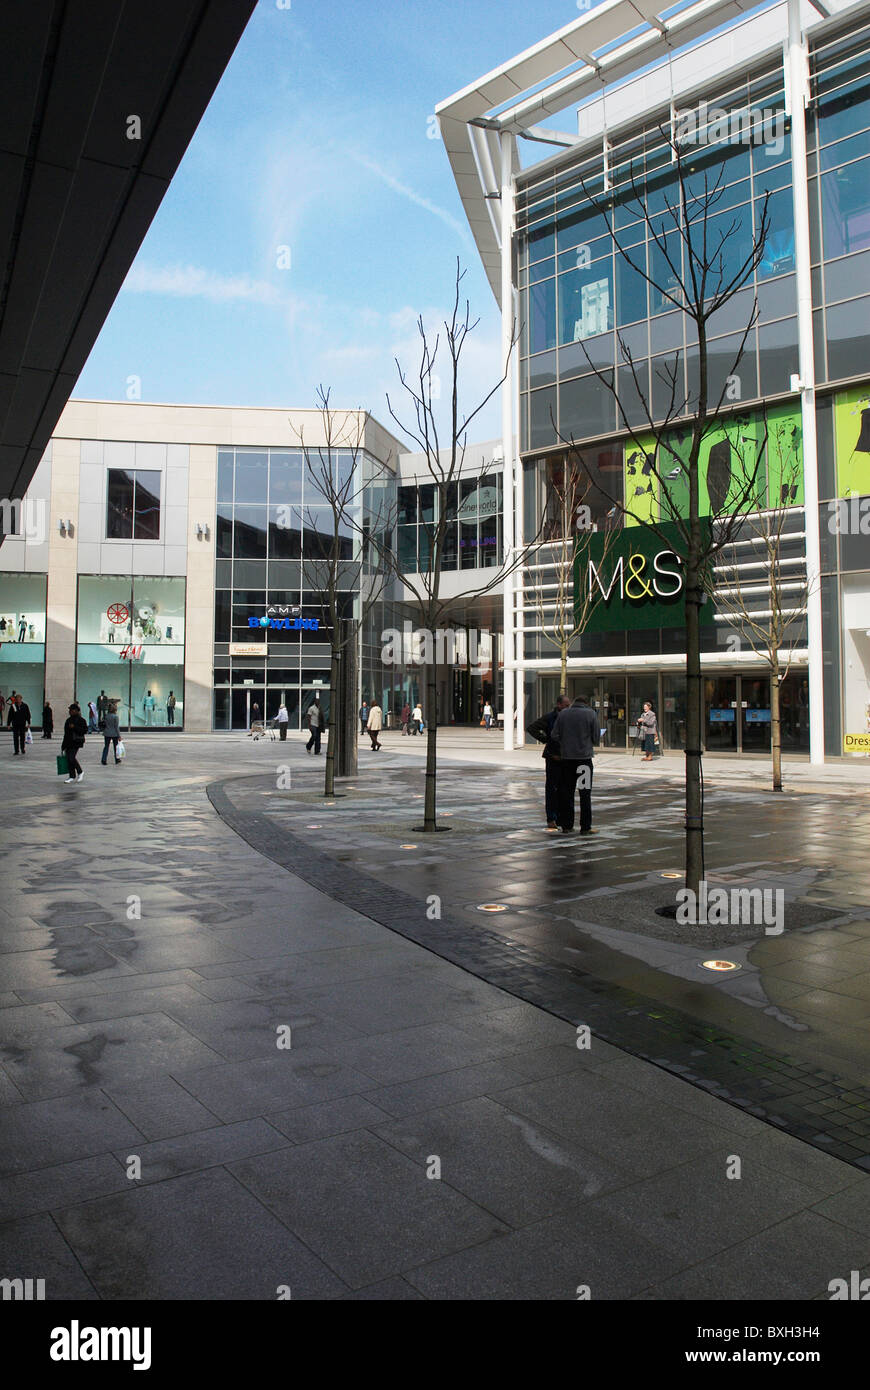 Urban landscaping within the shopping quarter of Eden Shopping Centre High Wycombe UK - Stock Image